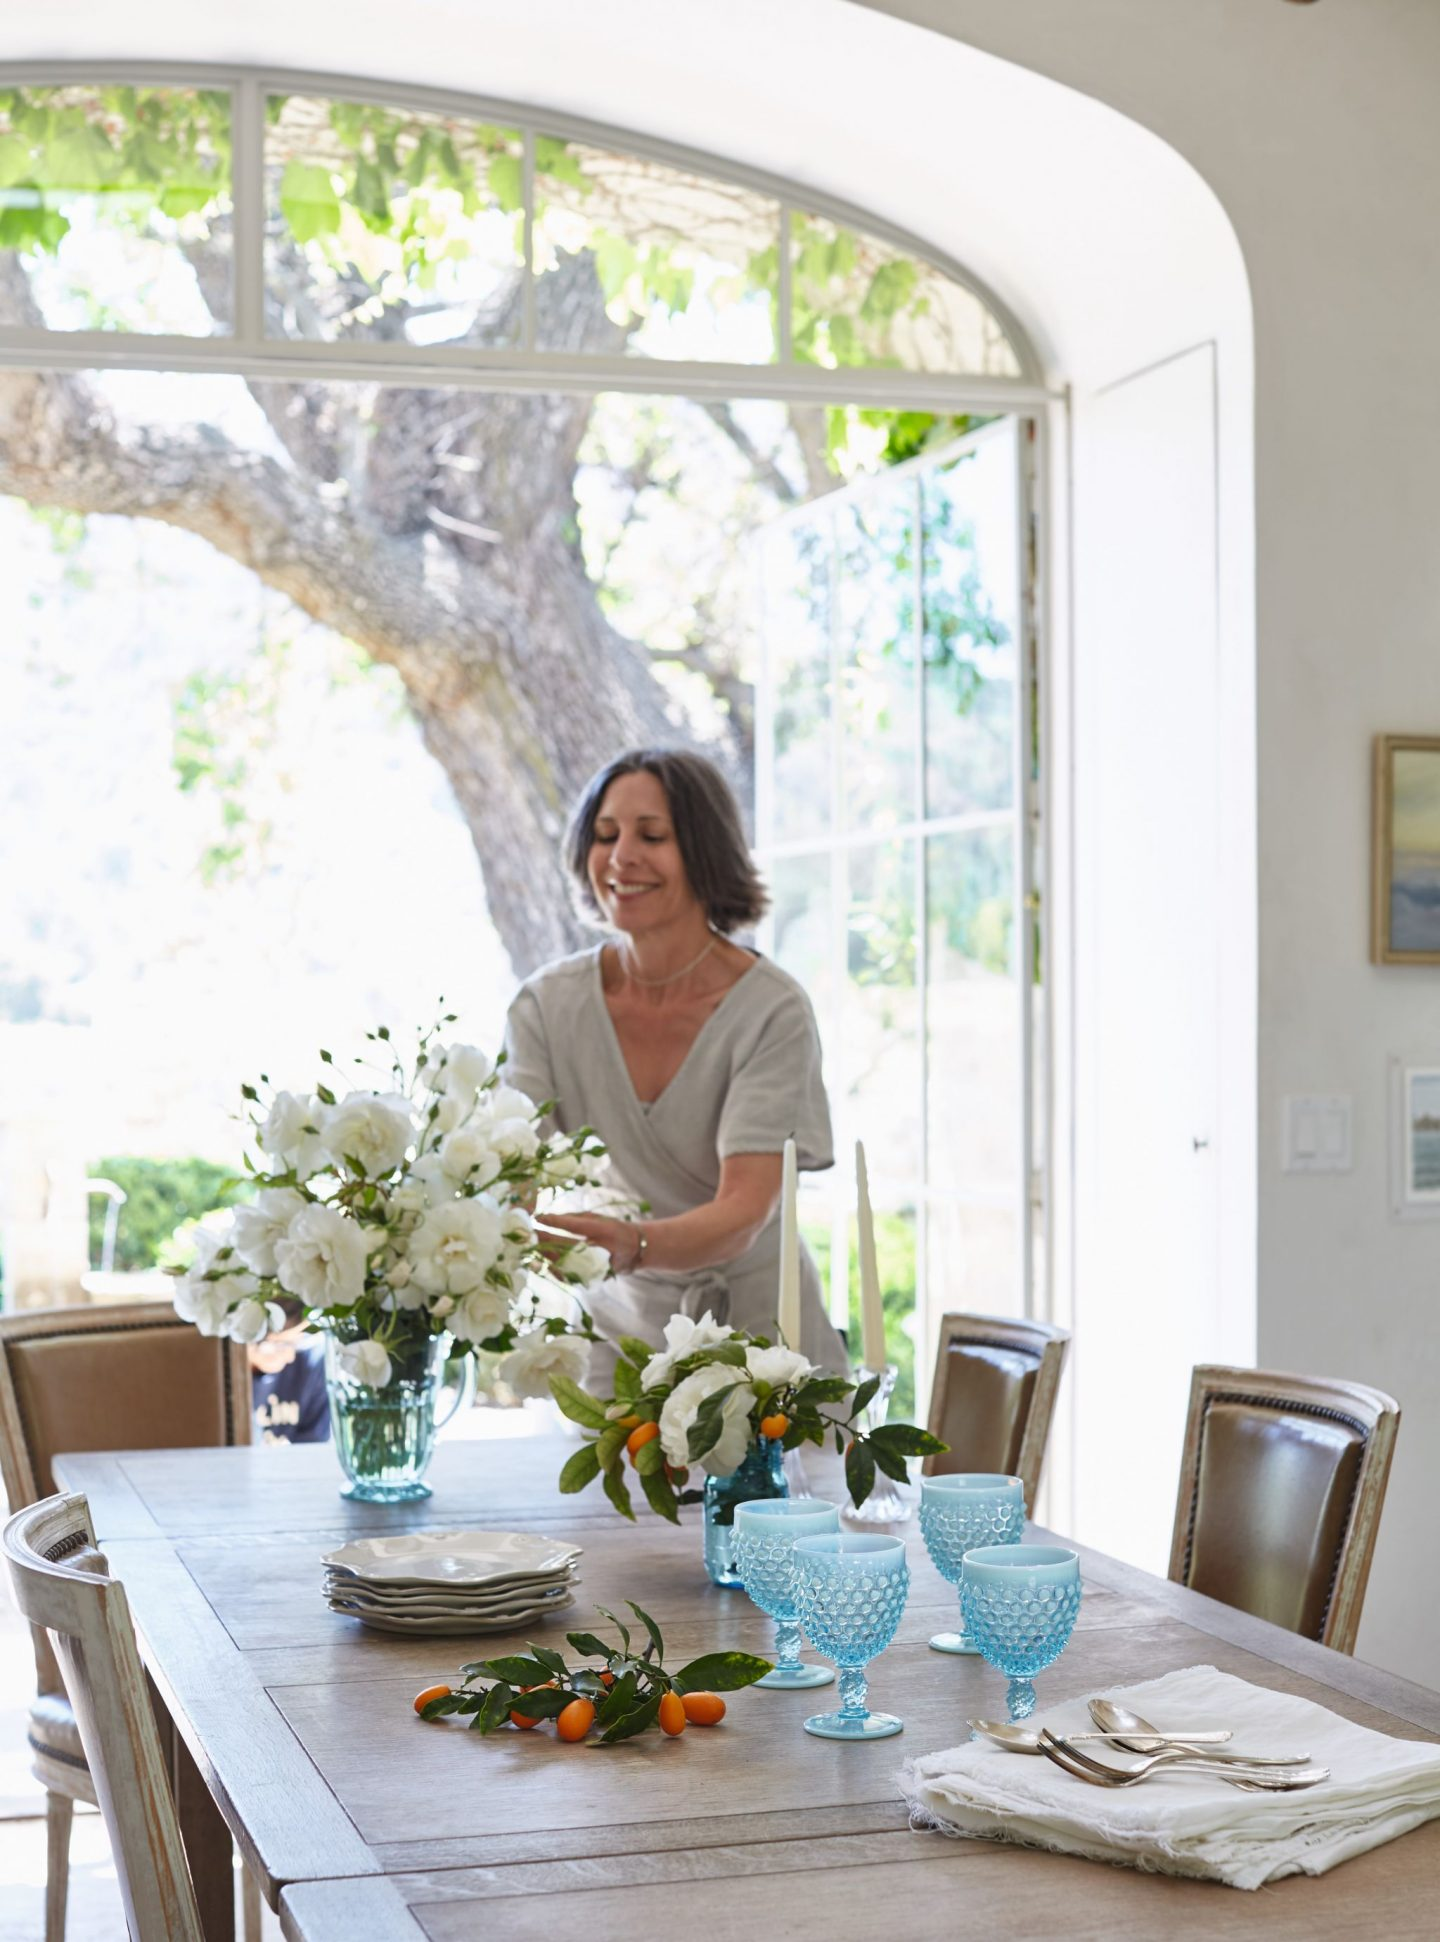 Patina Farm dining room with a magnificent view to an ancient oak and gardens. Brooke Giannetti and Steve have designed a dreamy lifestyle! #patinafarm #diningroom #giannettihome #modernfarmhouse #europeanfarmhouse #europeancountry #interiordesign